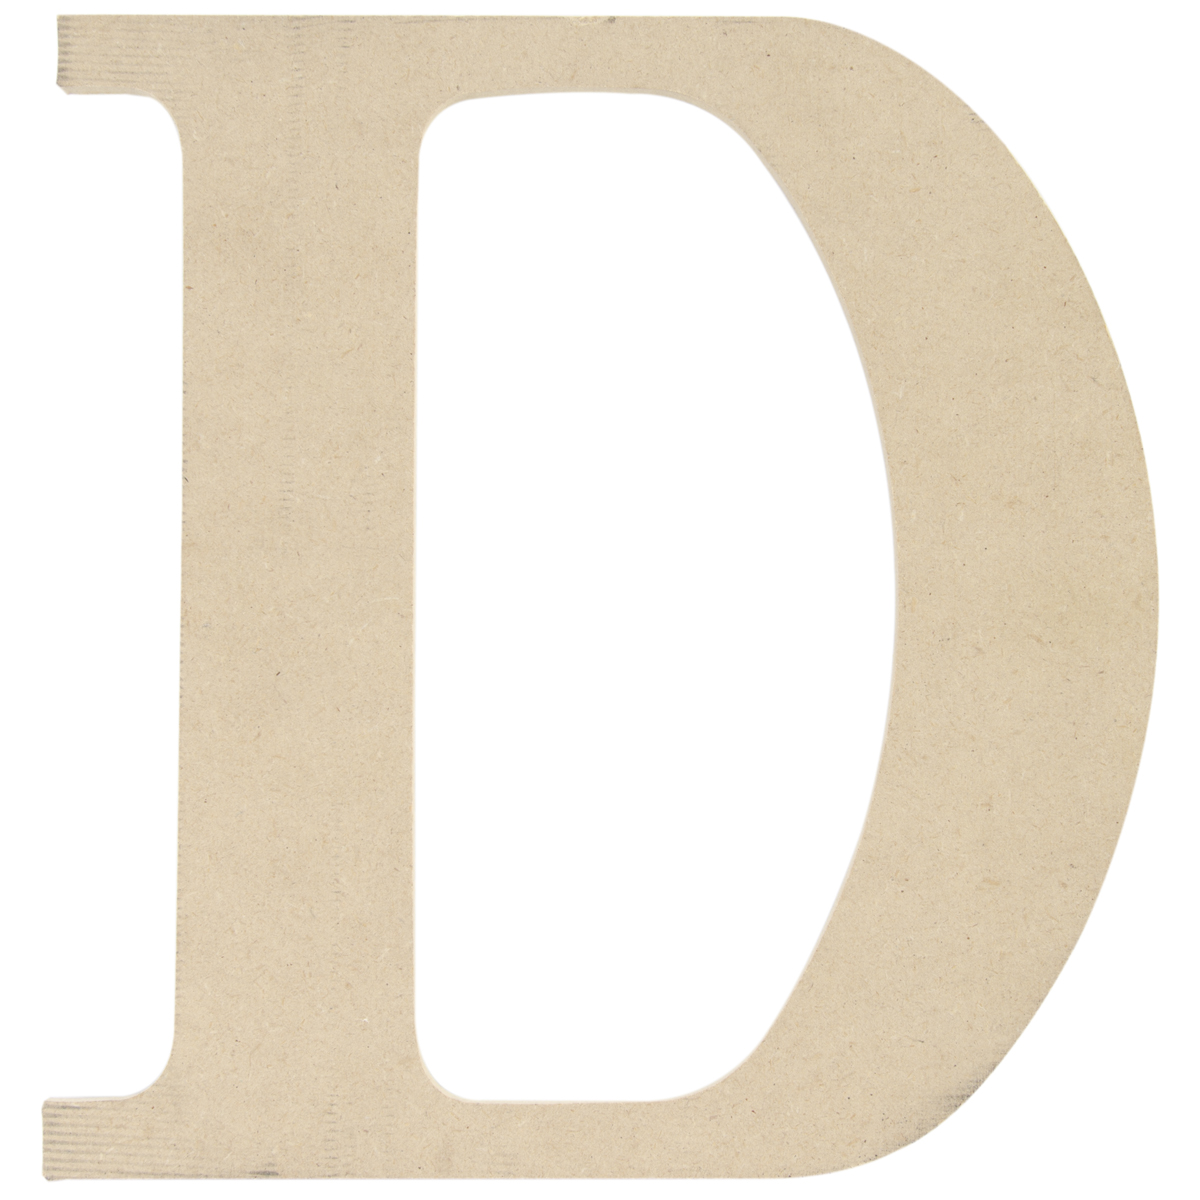 5 inch wooden letters mdf classic font wood letters amp numbers 9 5 inch letter d 18158